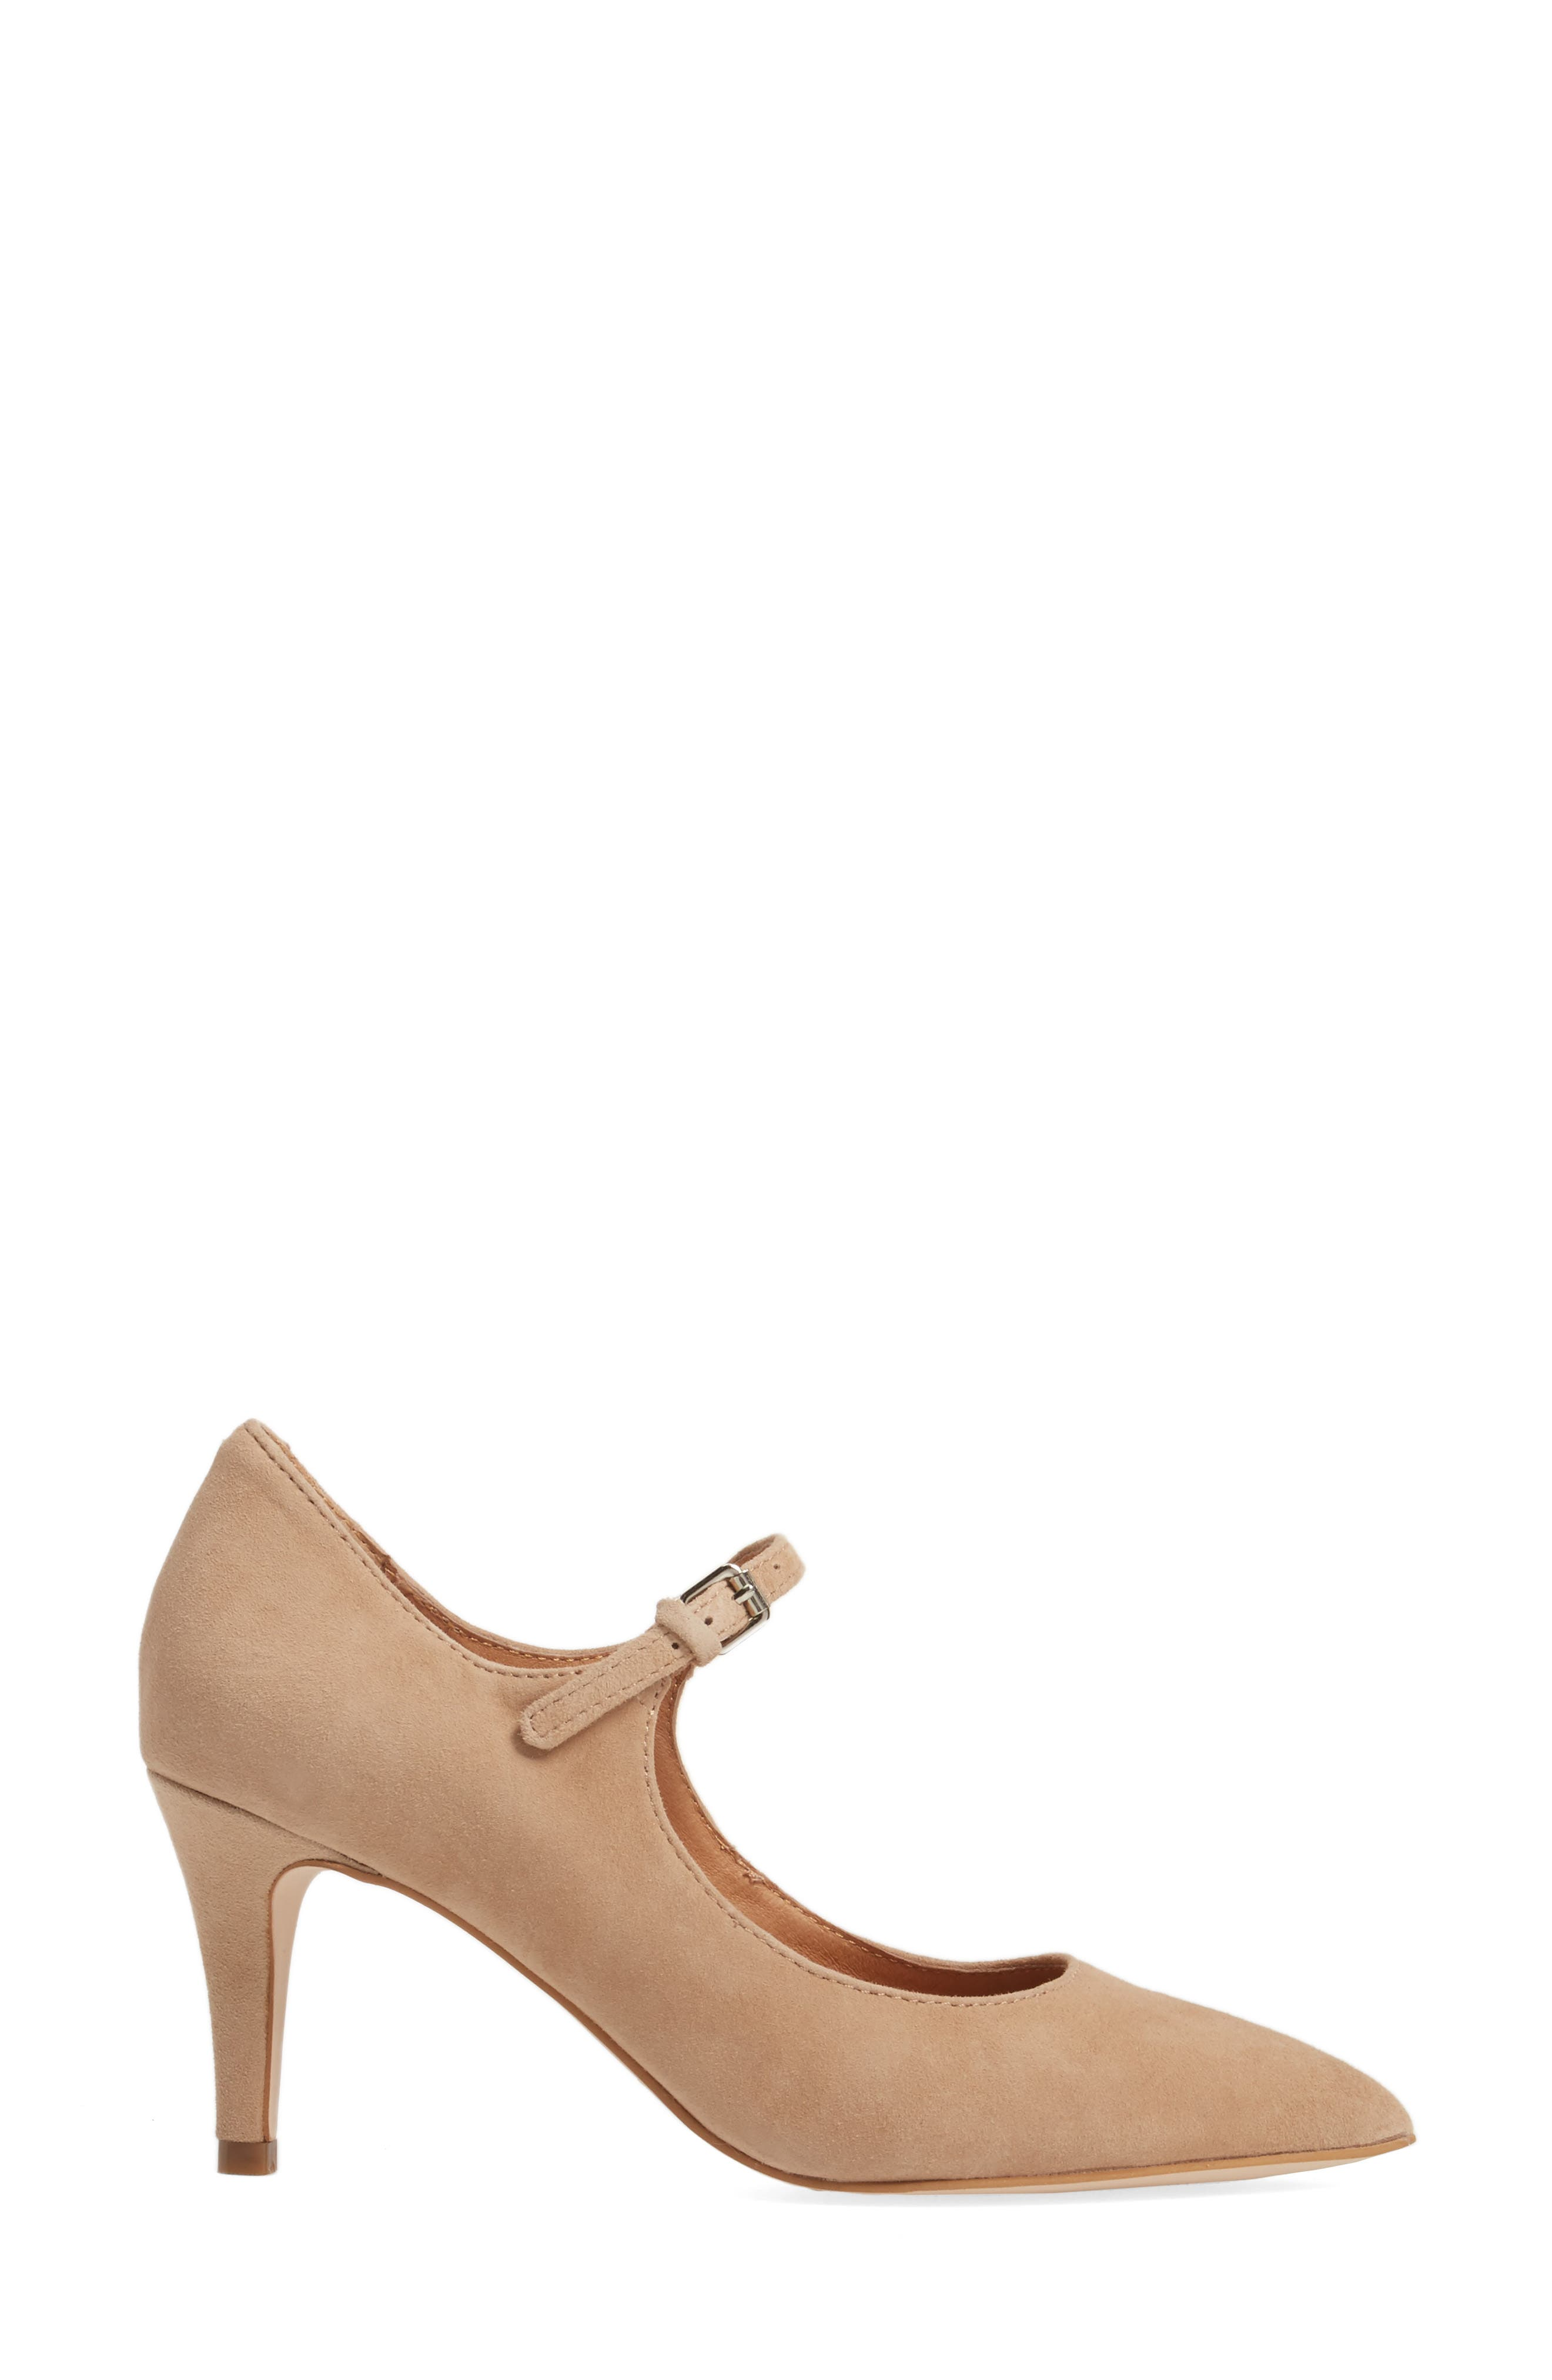 Coy Pointy Toe Pump,                             Alternate thumbnail 3, color,                             250